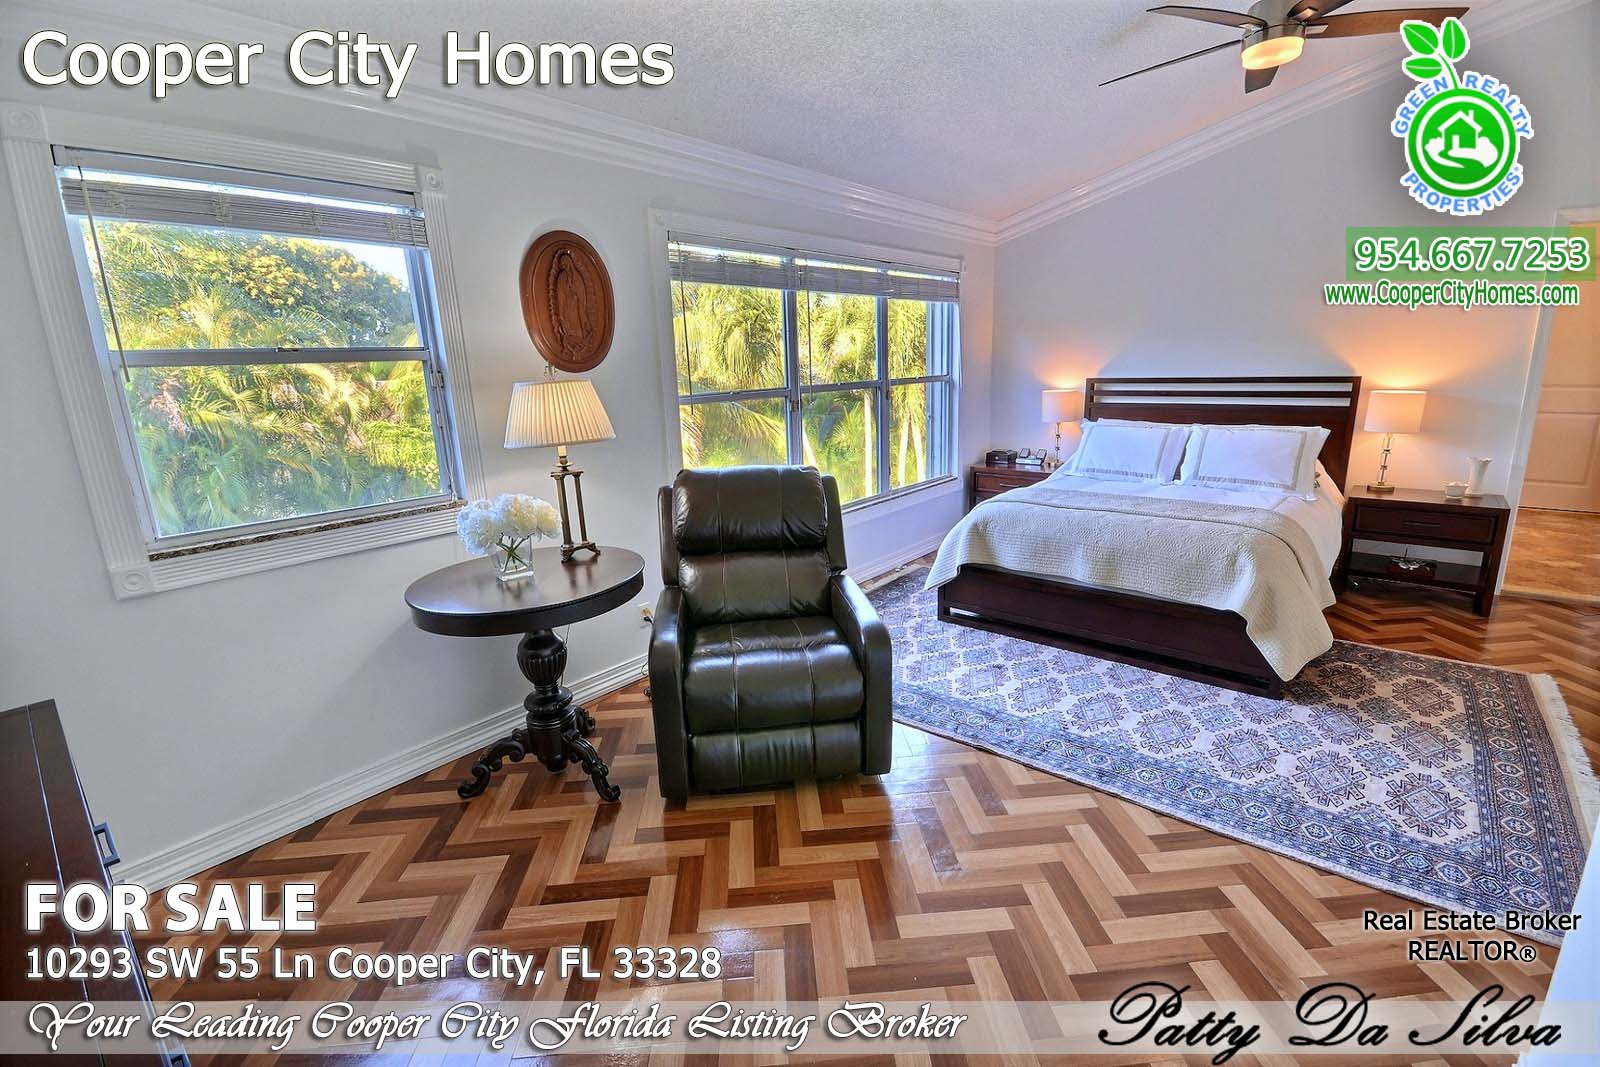 10293 - Cooper City Homes For Sale (30)